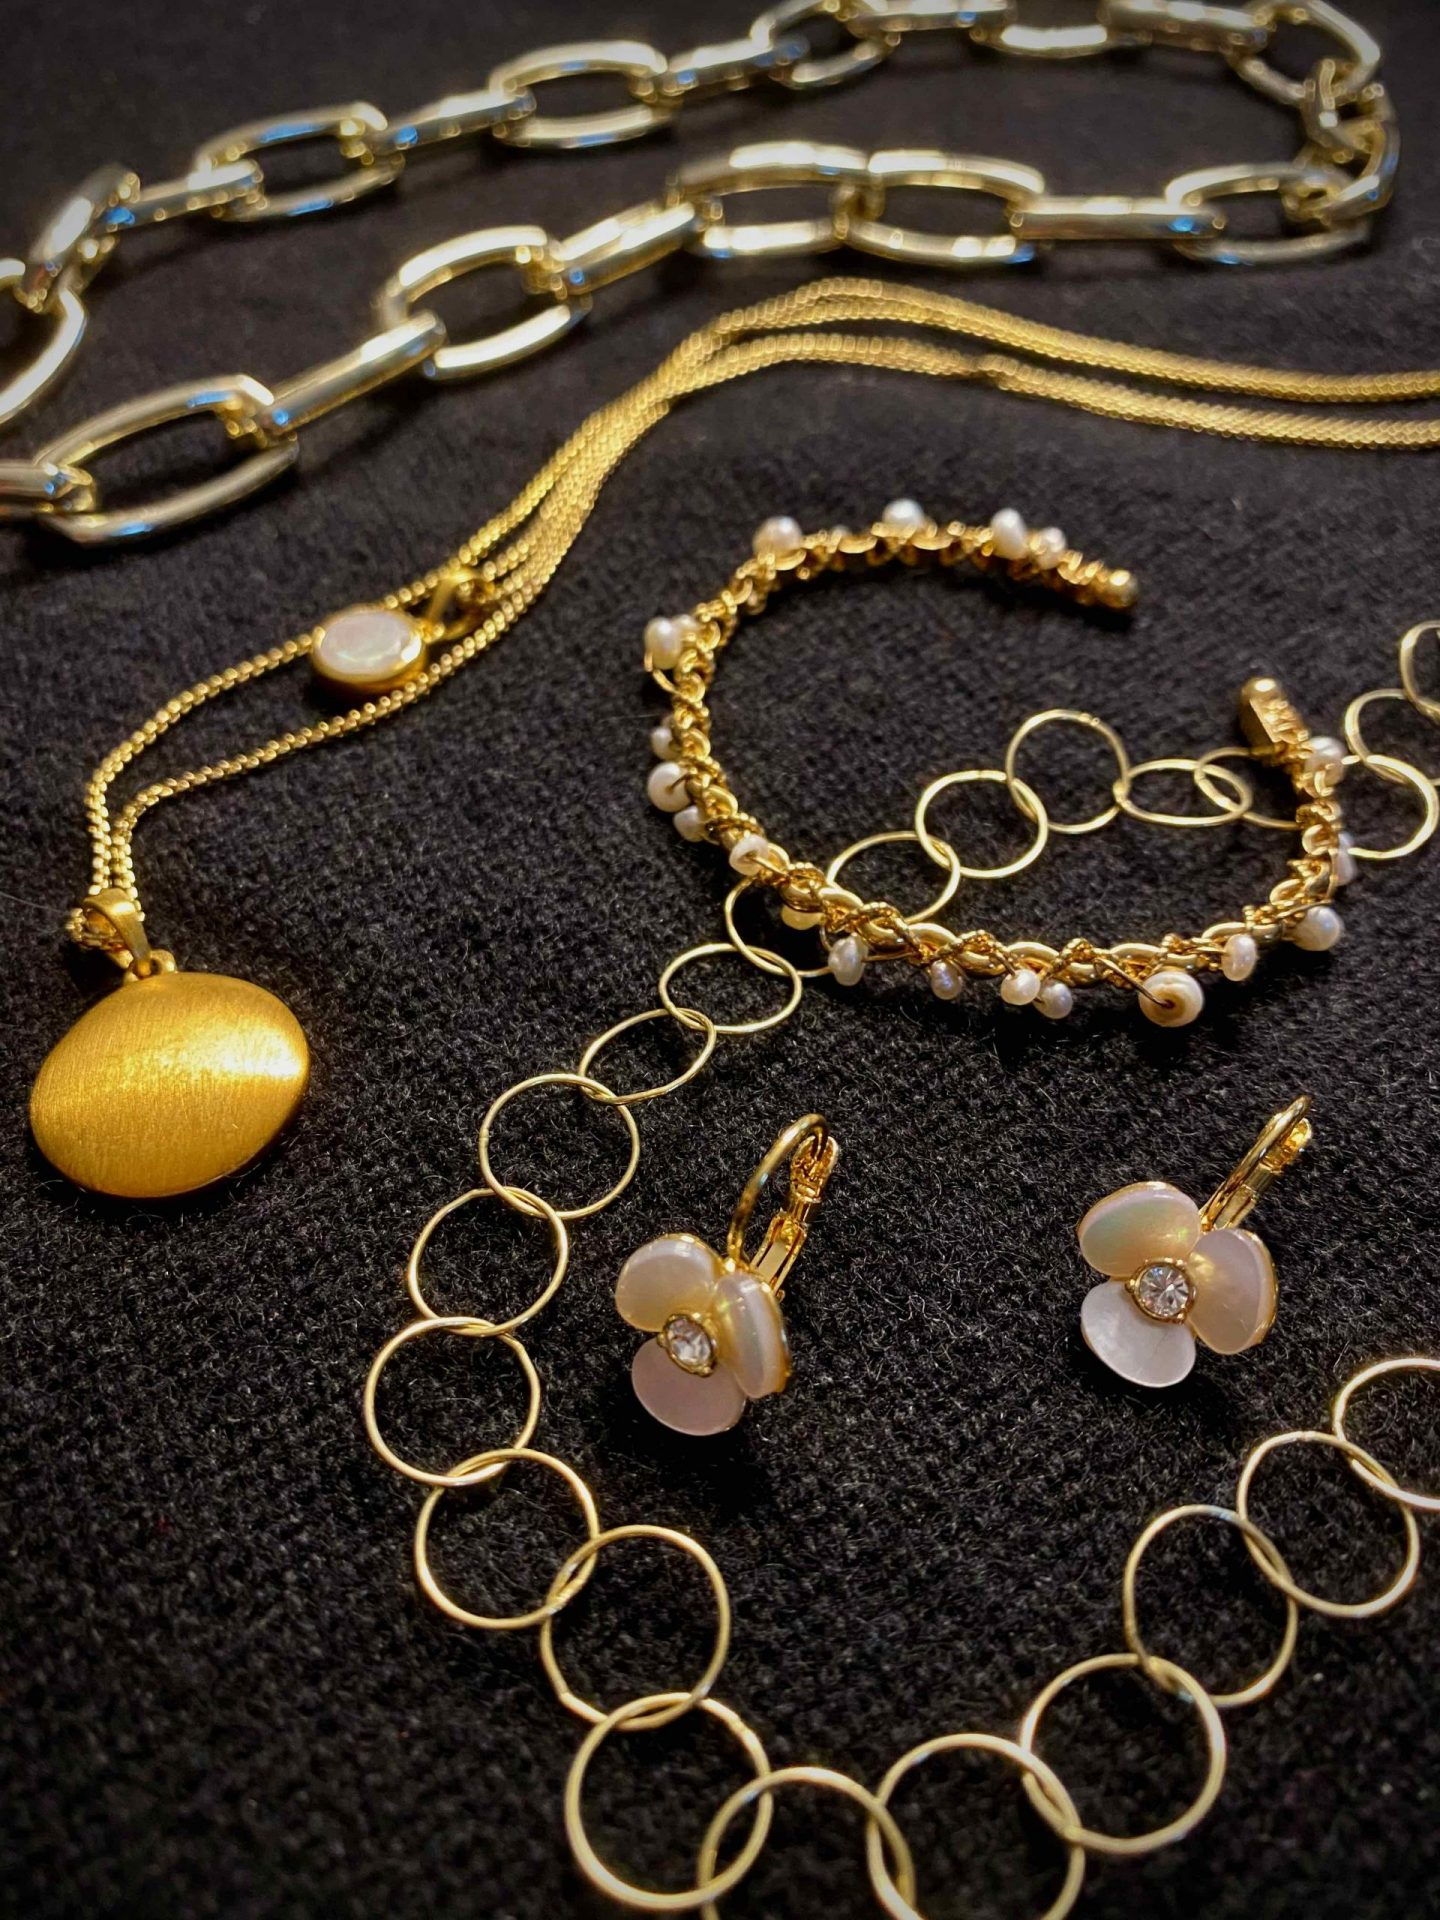 Gold Jewelry | The Spectacular Adventurer